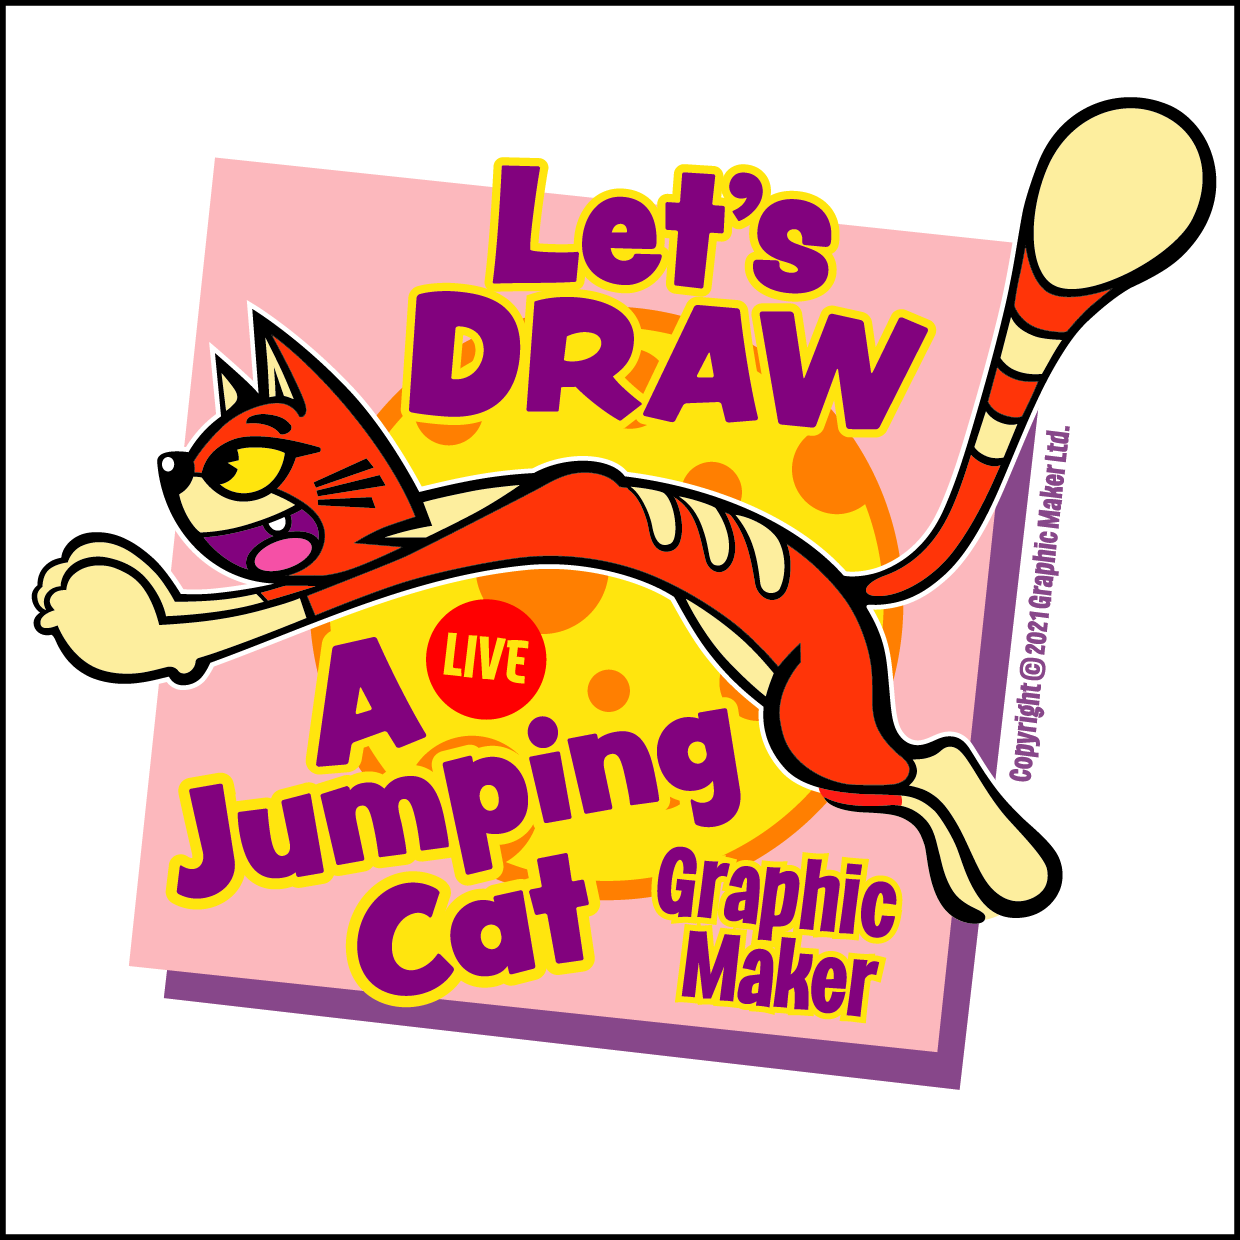 Let's DRAW A Jumping Cat